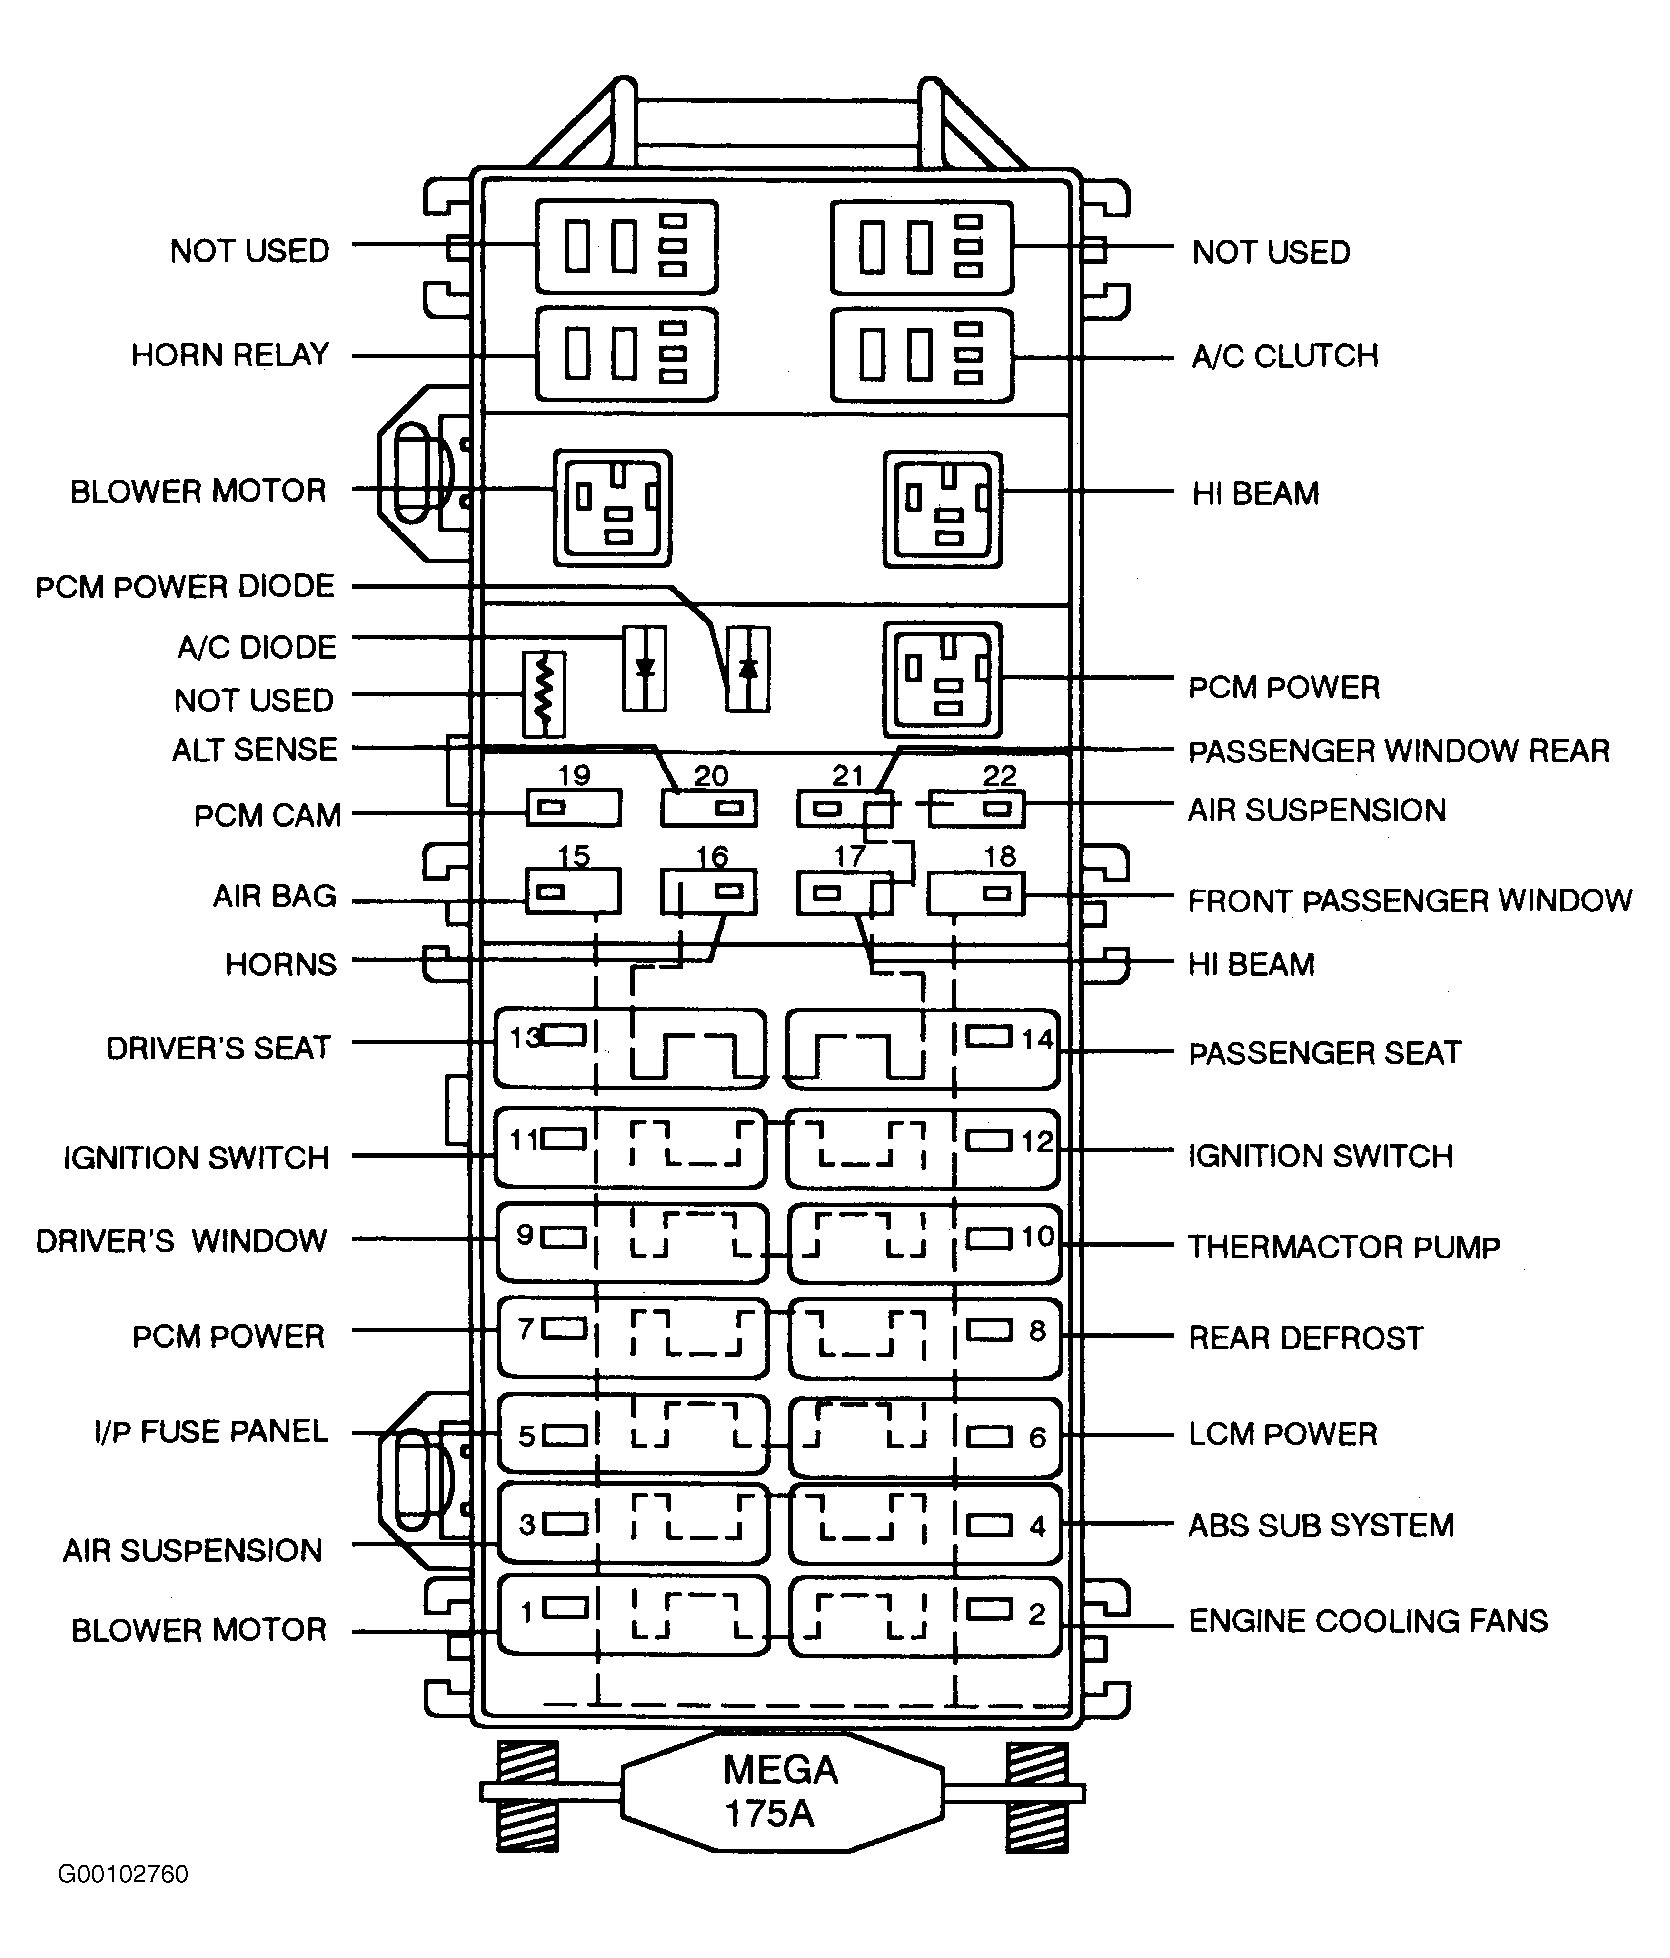 hight resolution of 91 town car fuse diagram simple wiring diagram rh david huggett co uk car fuse box